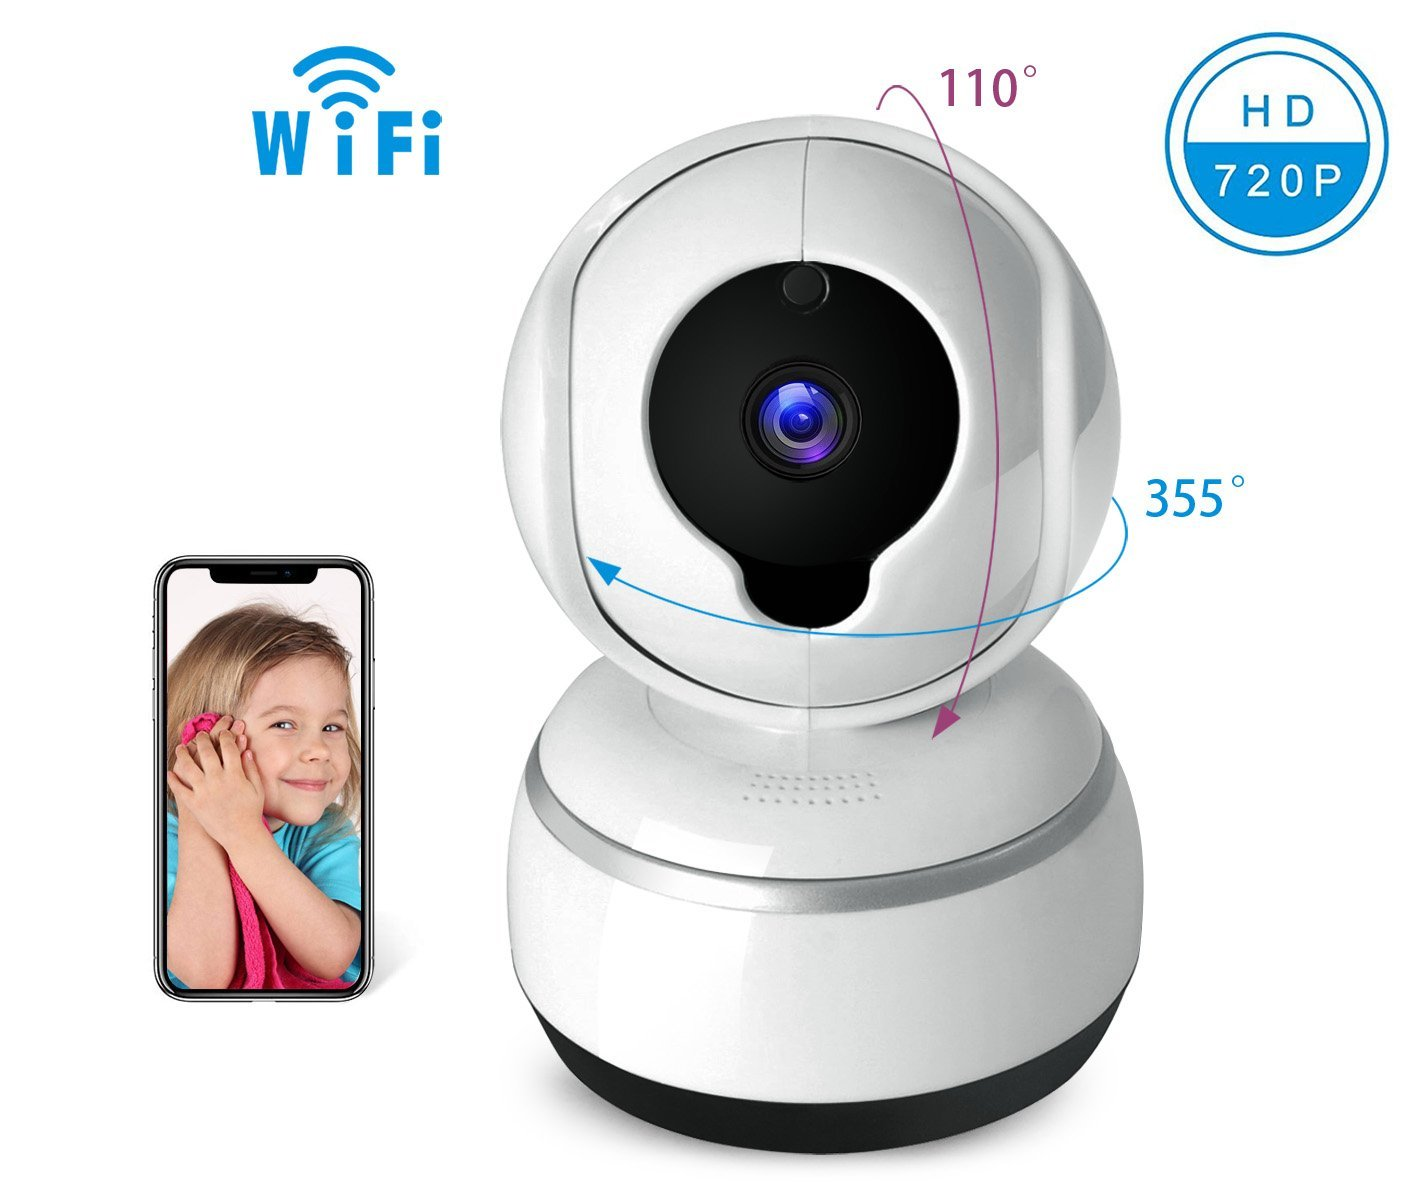 Baby Camera IOS/Android APP Remote Control Camera, WIFI Camera, 720P HD IP Camera, Two-Way Voice Intercom, Move Alarm, Infrared Night Vision Function, Pan/Tilt/Zoom with Home Security System